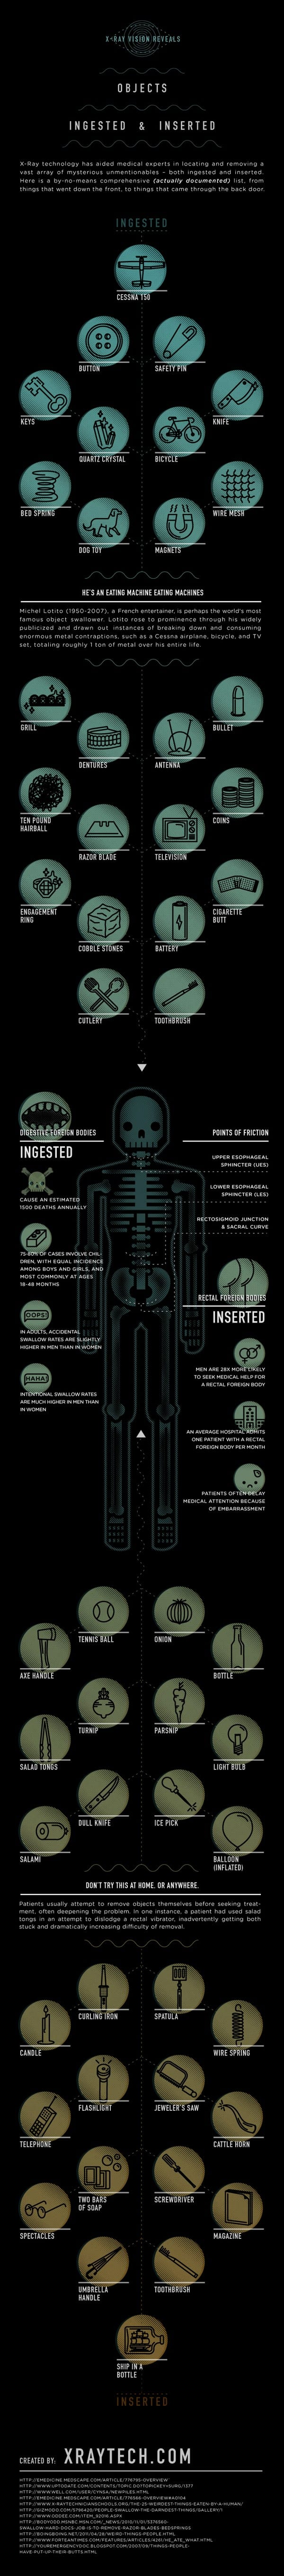 X Ray Vision Reveals Objects Ingested and Inserted infographic